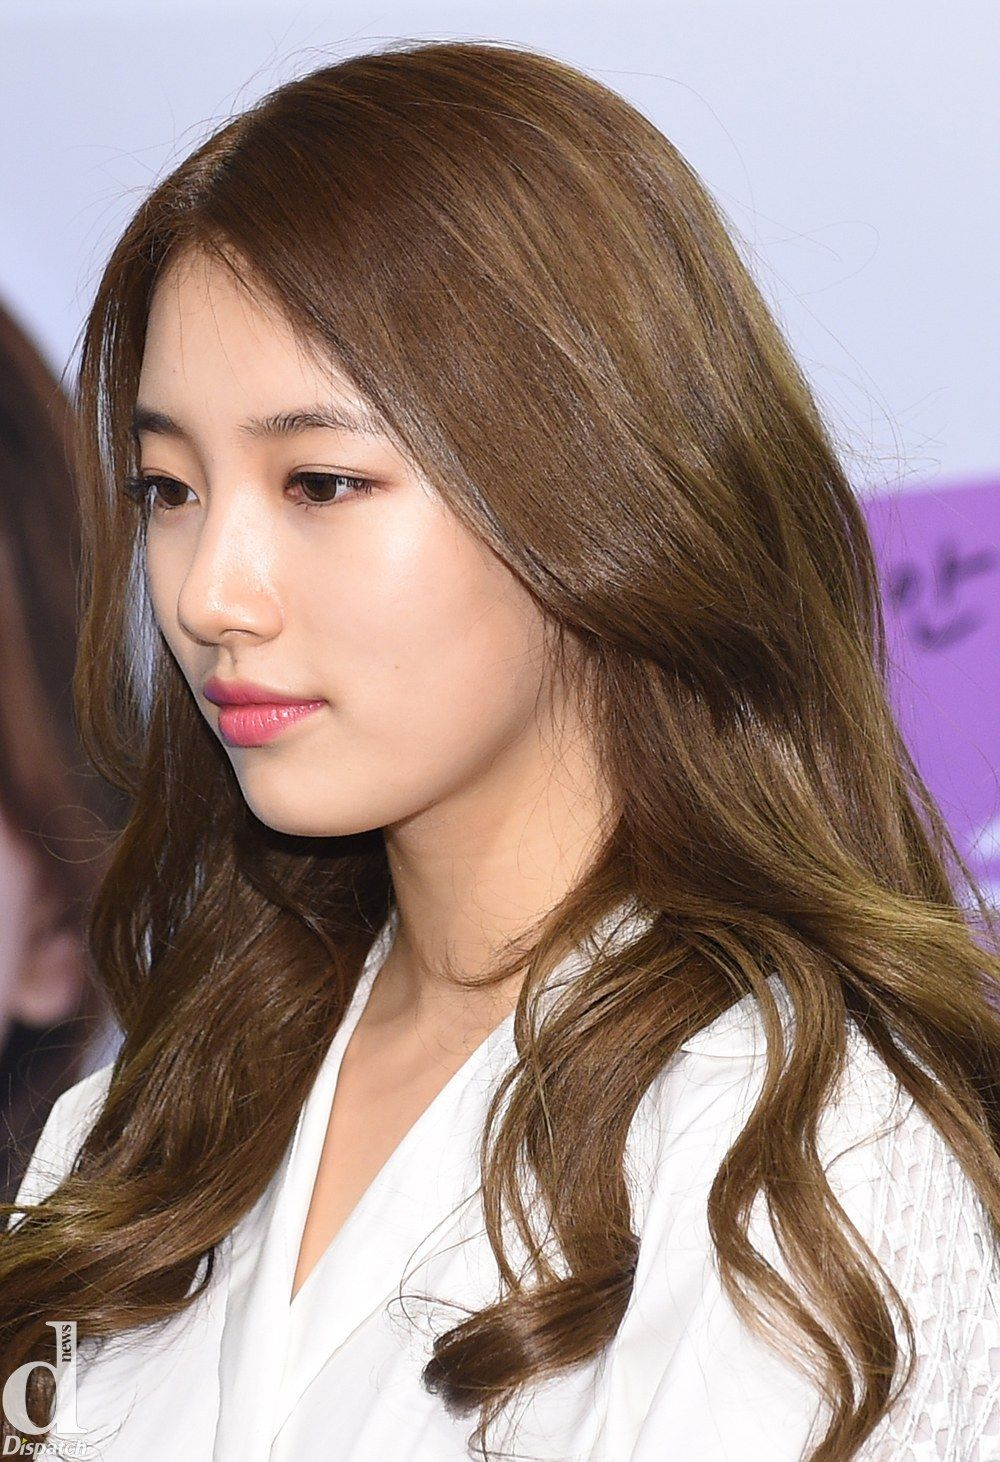 Kpop Idols Kpop Idol Girls Pretty Idols Pretty Kpop Idols Kpop Side Profile Pretty Side Profile Idols Suzy Si Beauty Girls Face Perfect Nose Asian Beauty